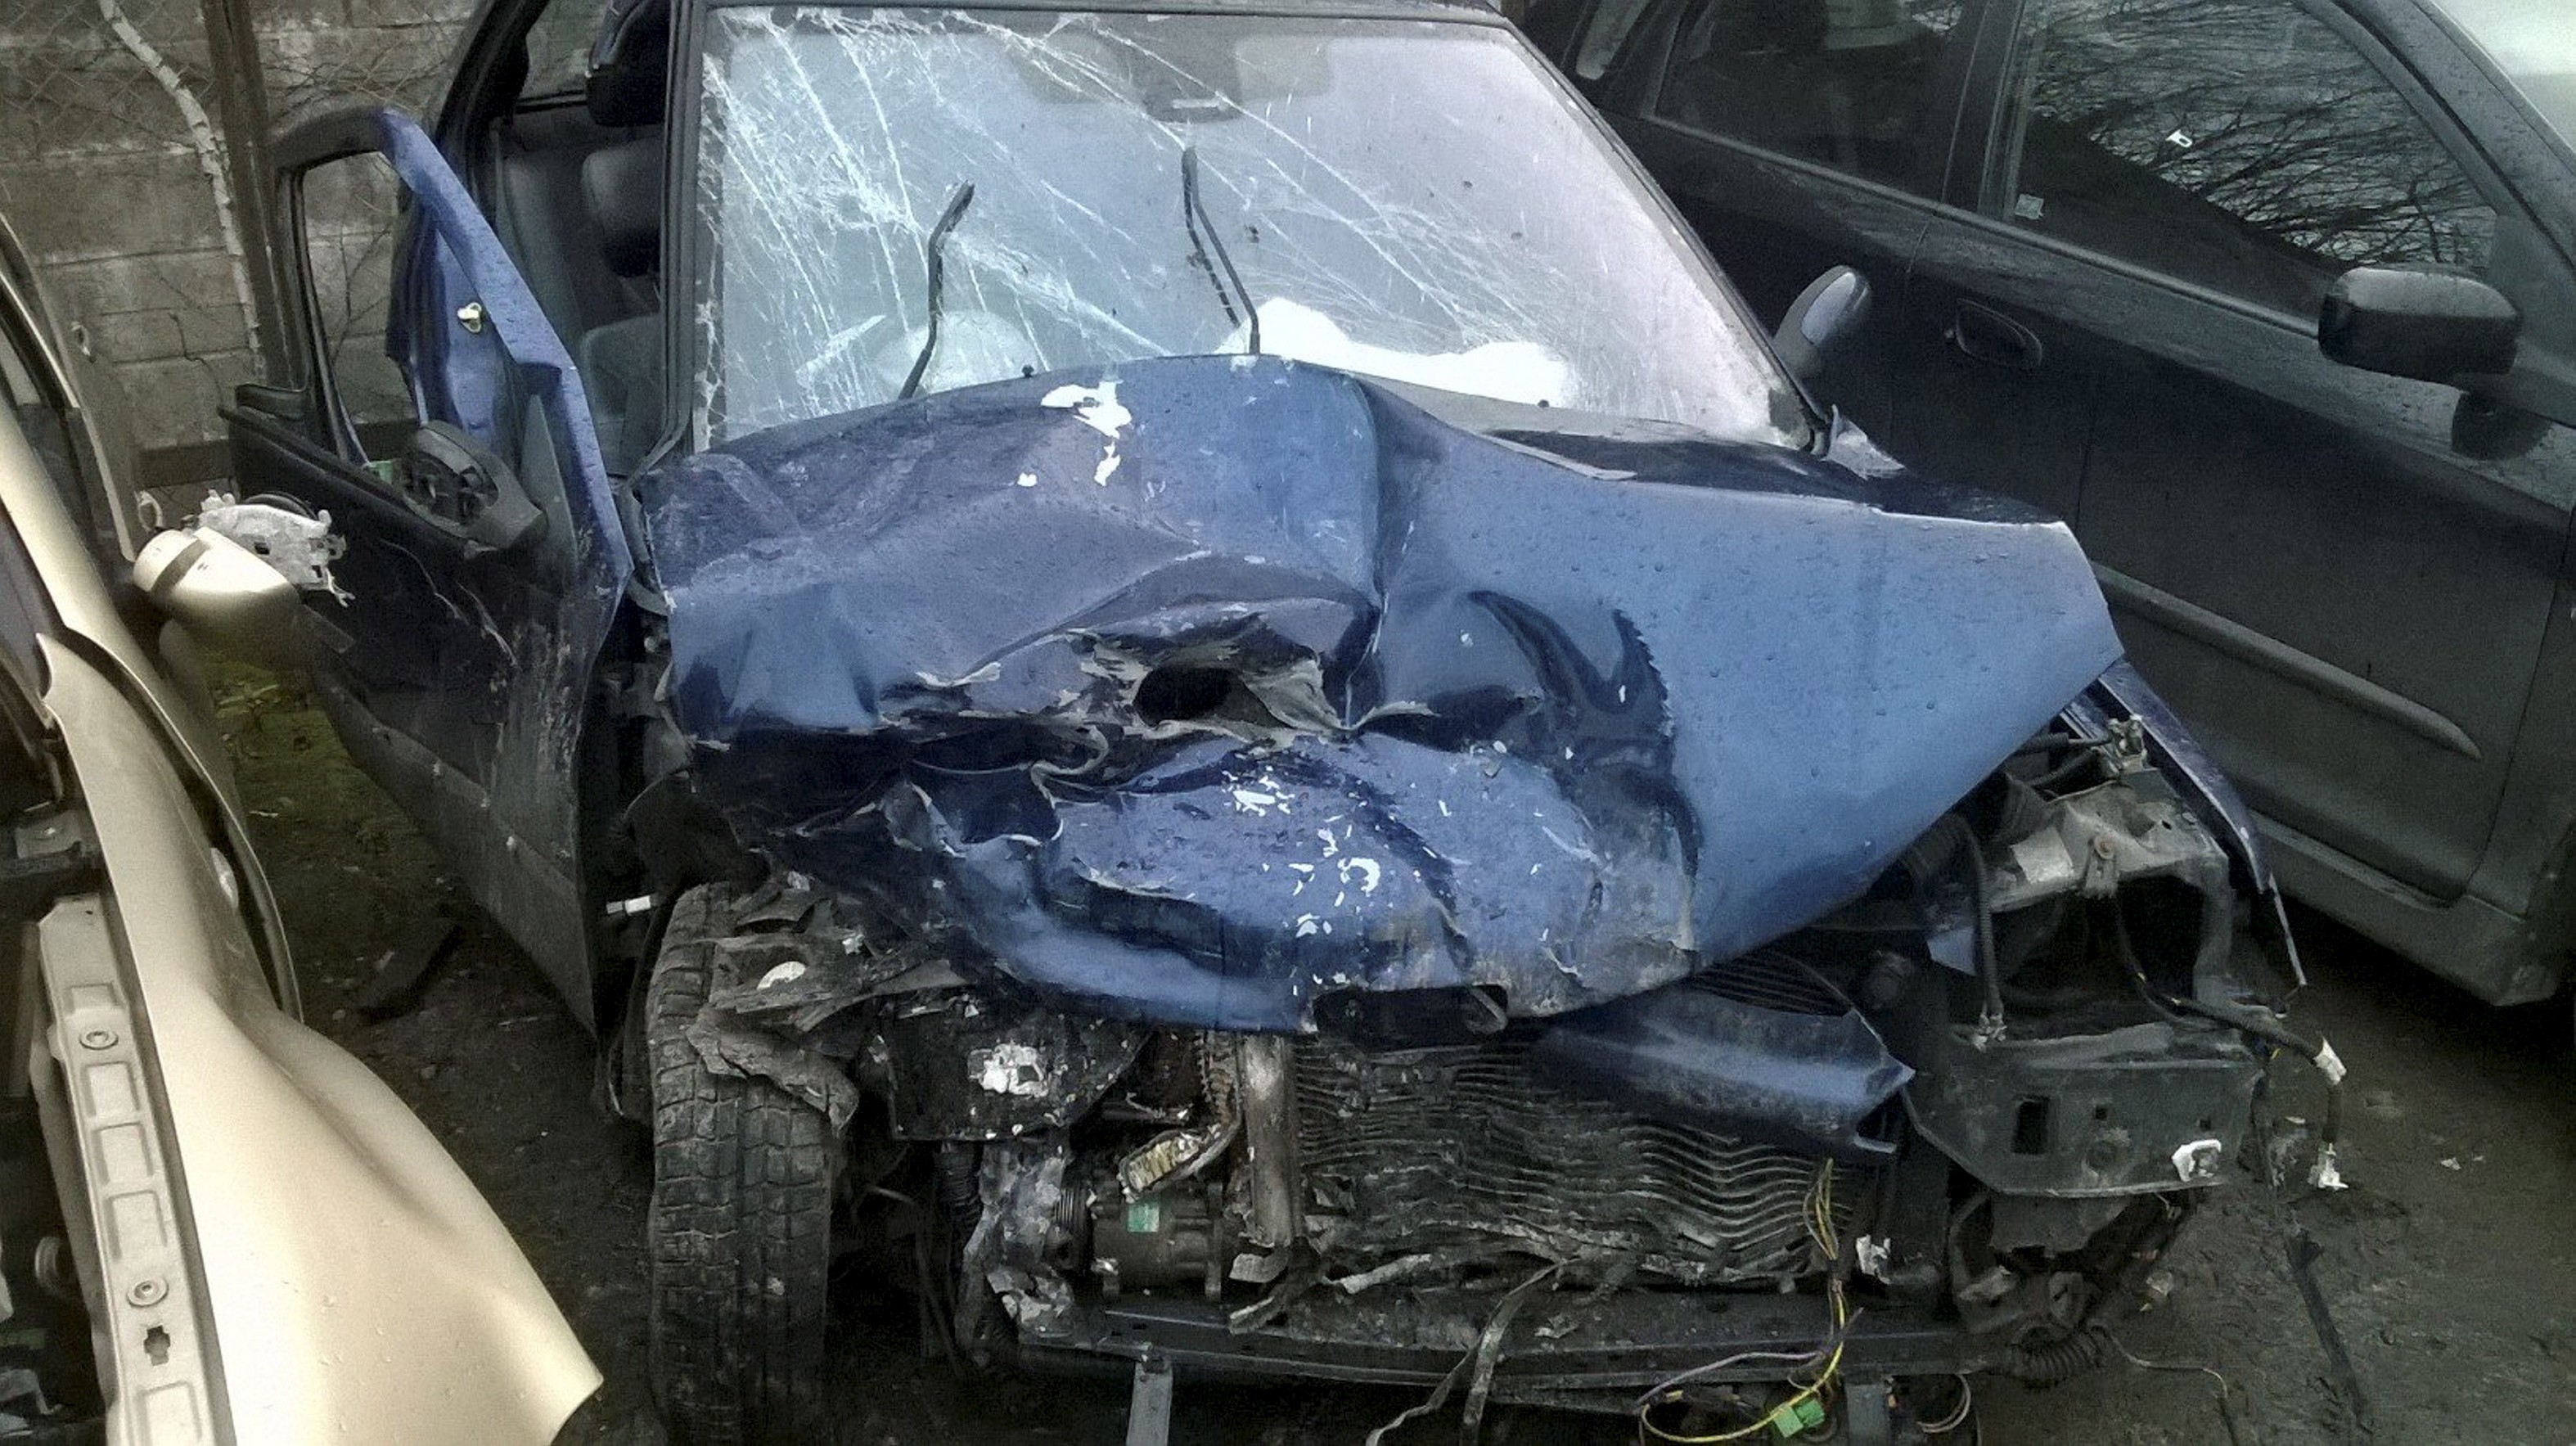 Margaret's car was severely damaged in the crash.